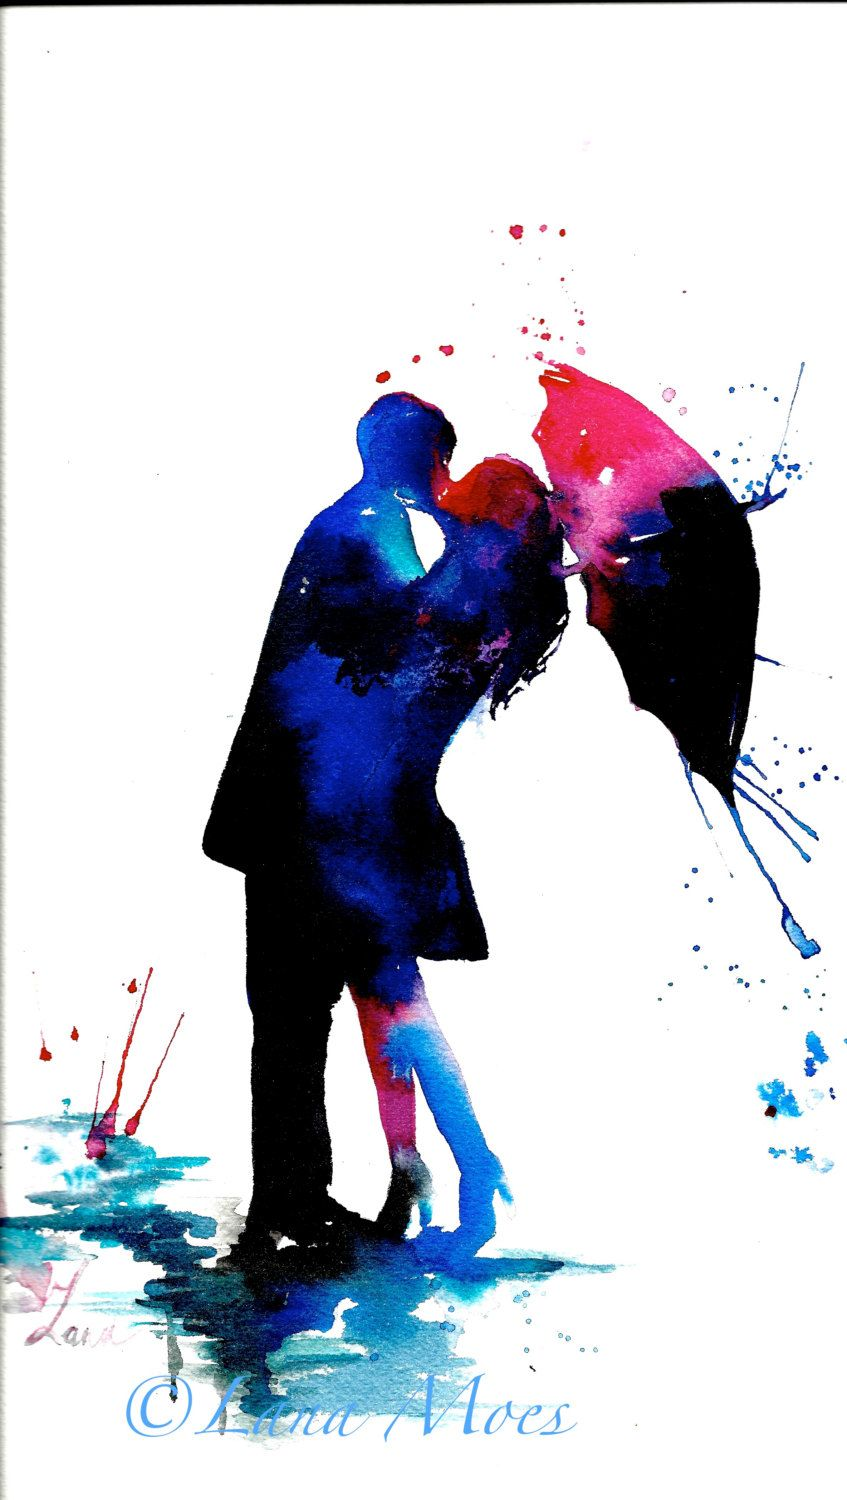 847x1500 Love Kiss Rain Umbrella Art Print From Original Watercolor